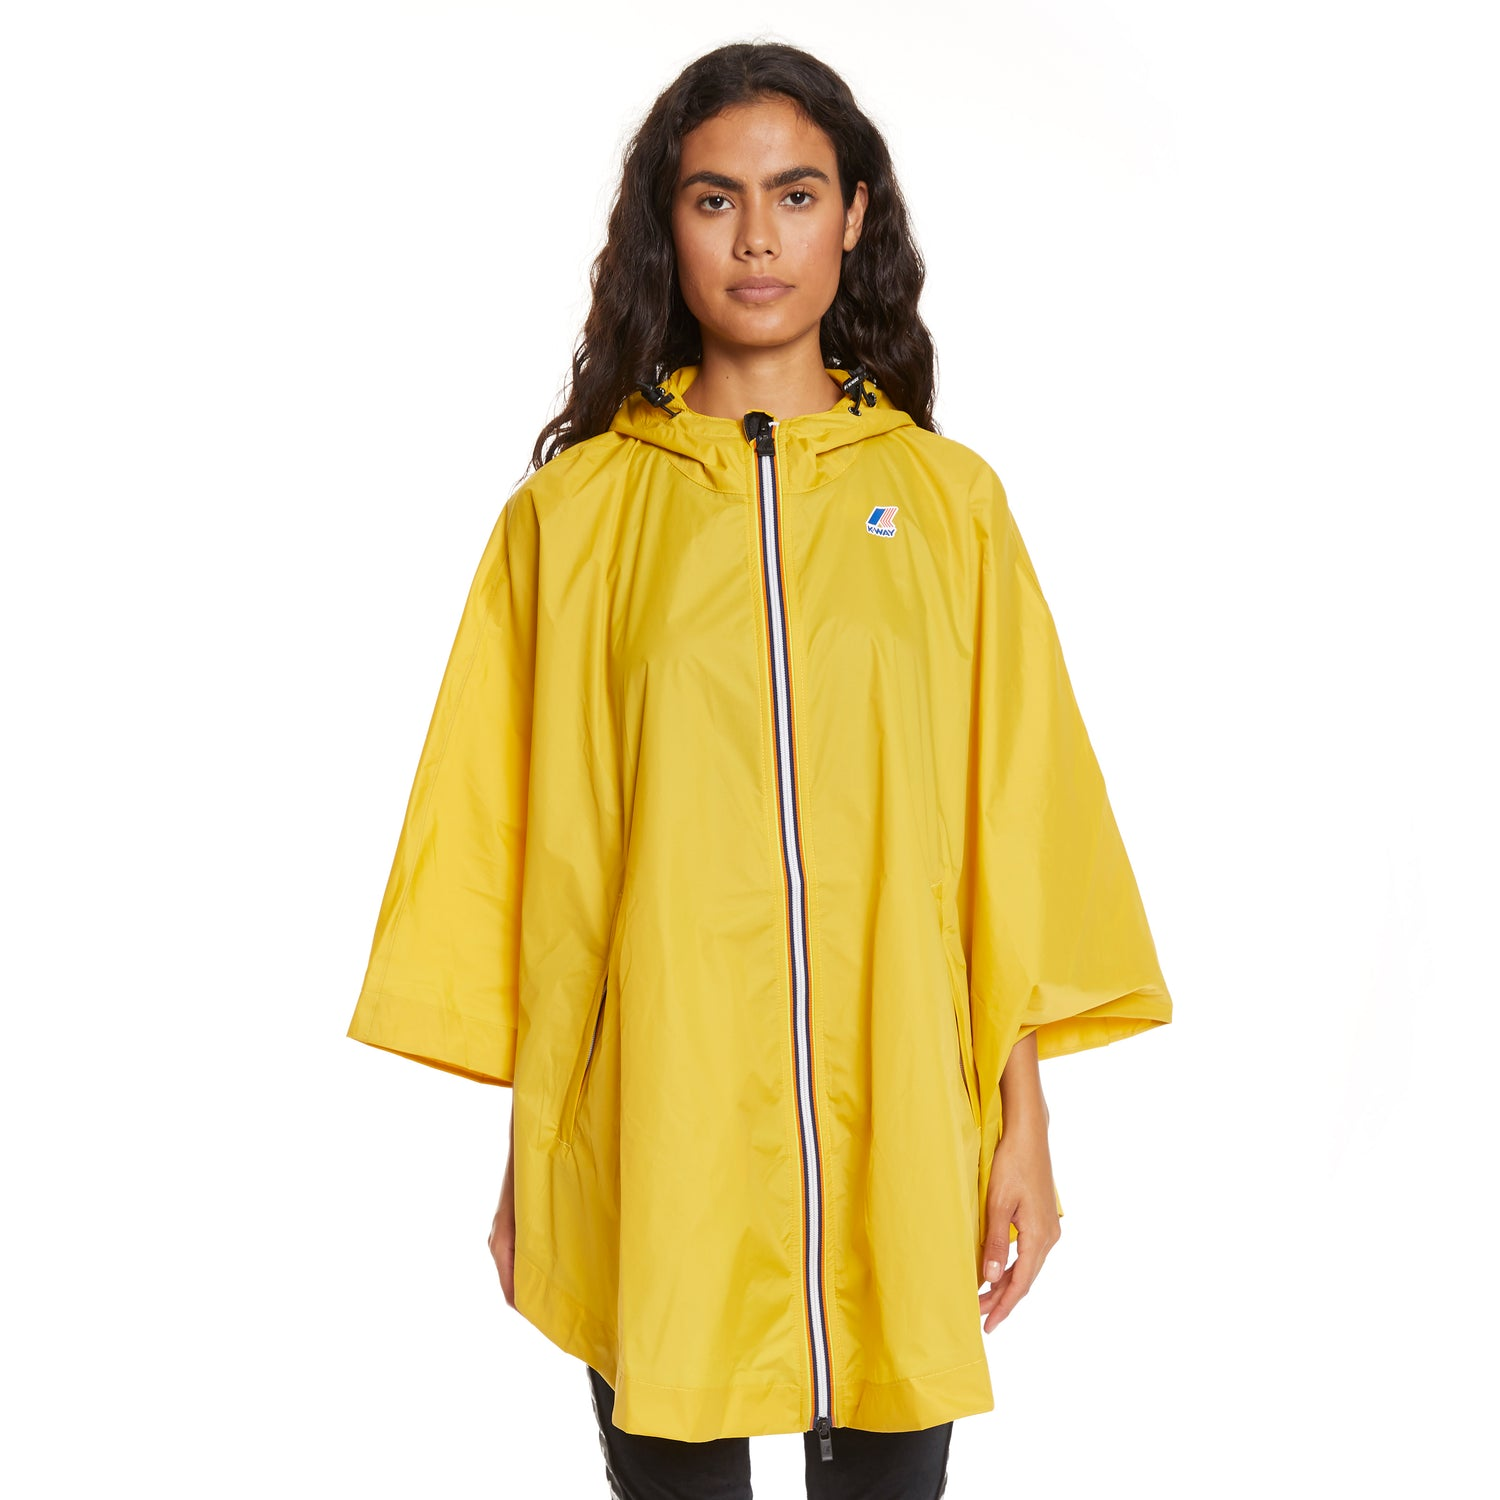 Women's Le Vrai 3.0 Morgan Yellow Mustard